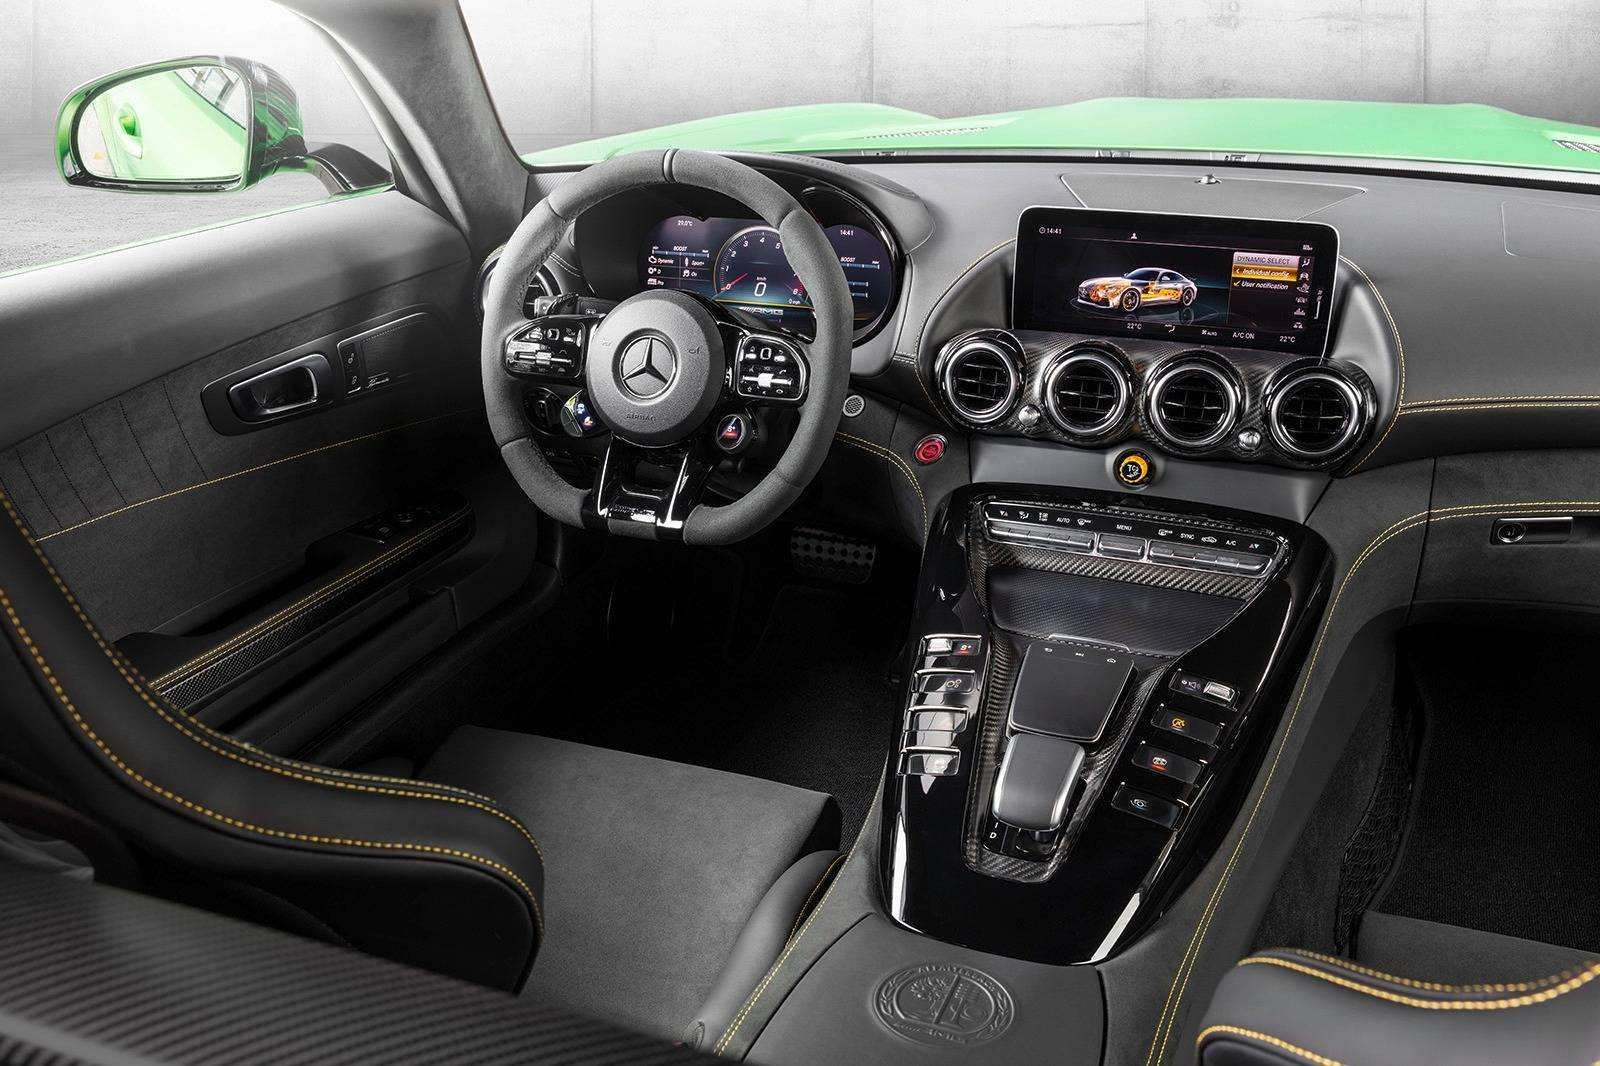 56 Concept of Mercedes 2020 A Class Amg Review by Mercedes 2020 A Class Amg